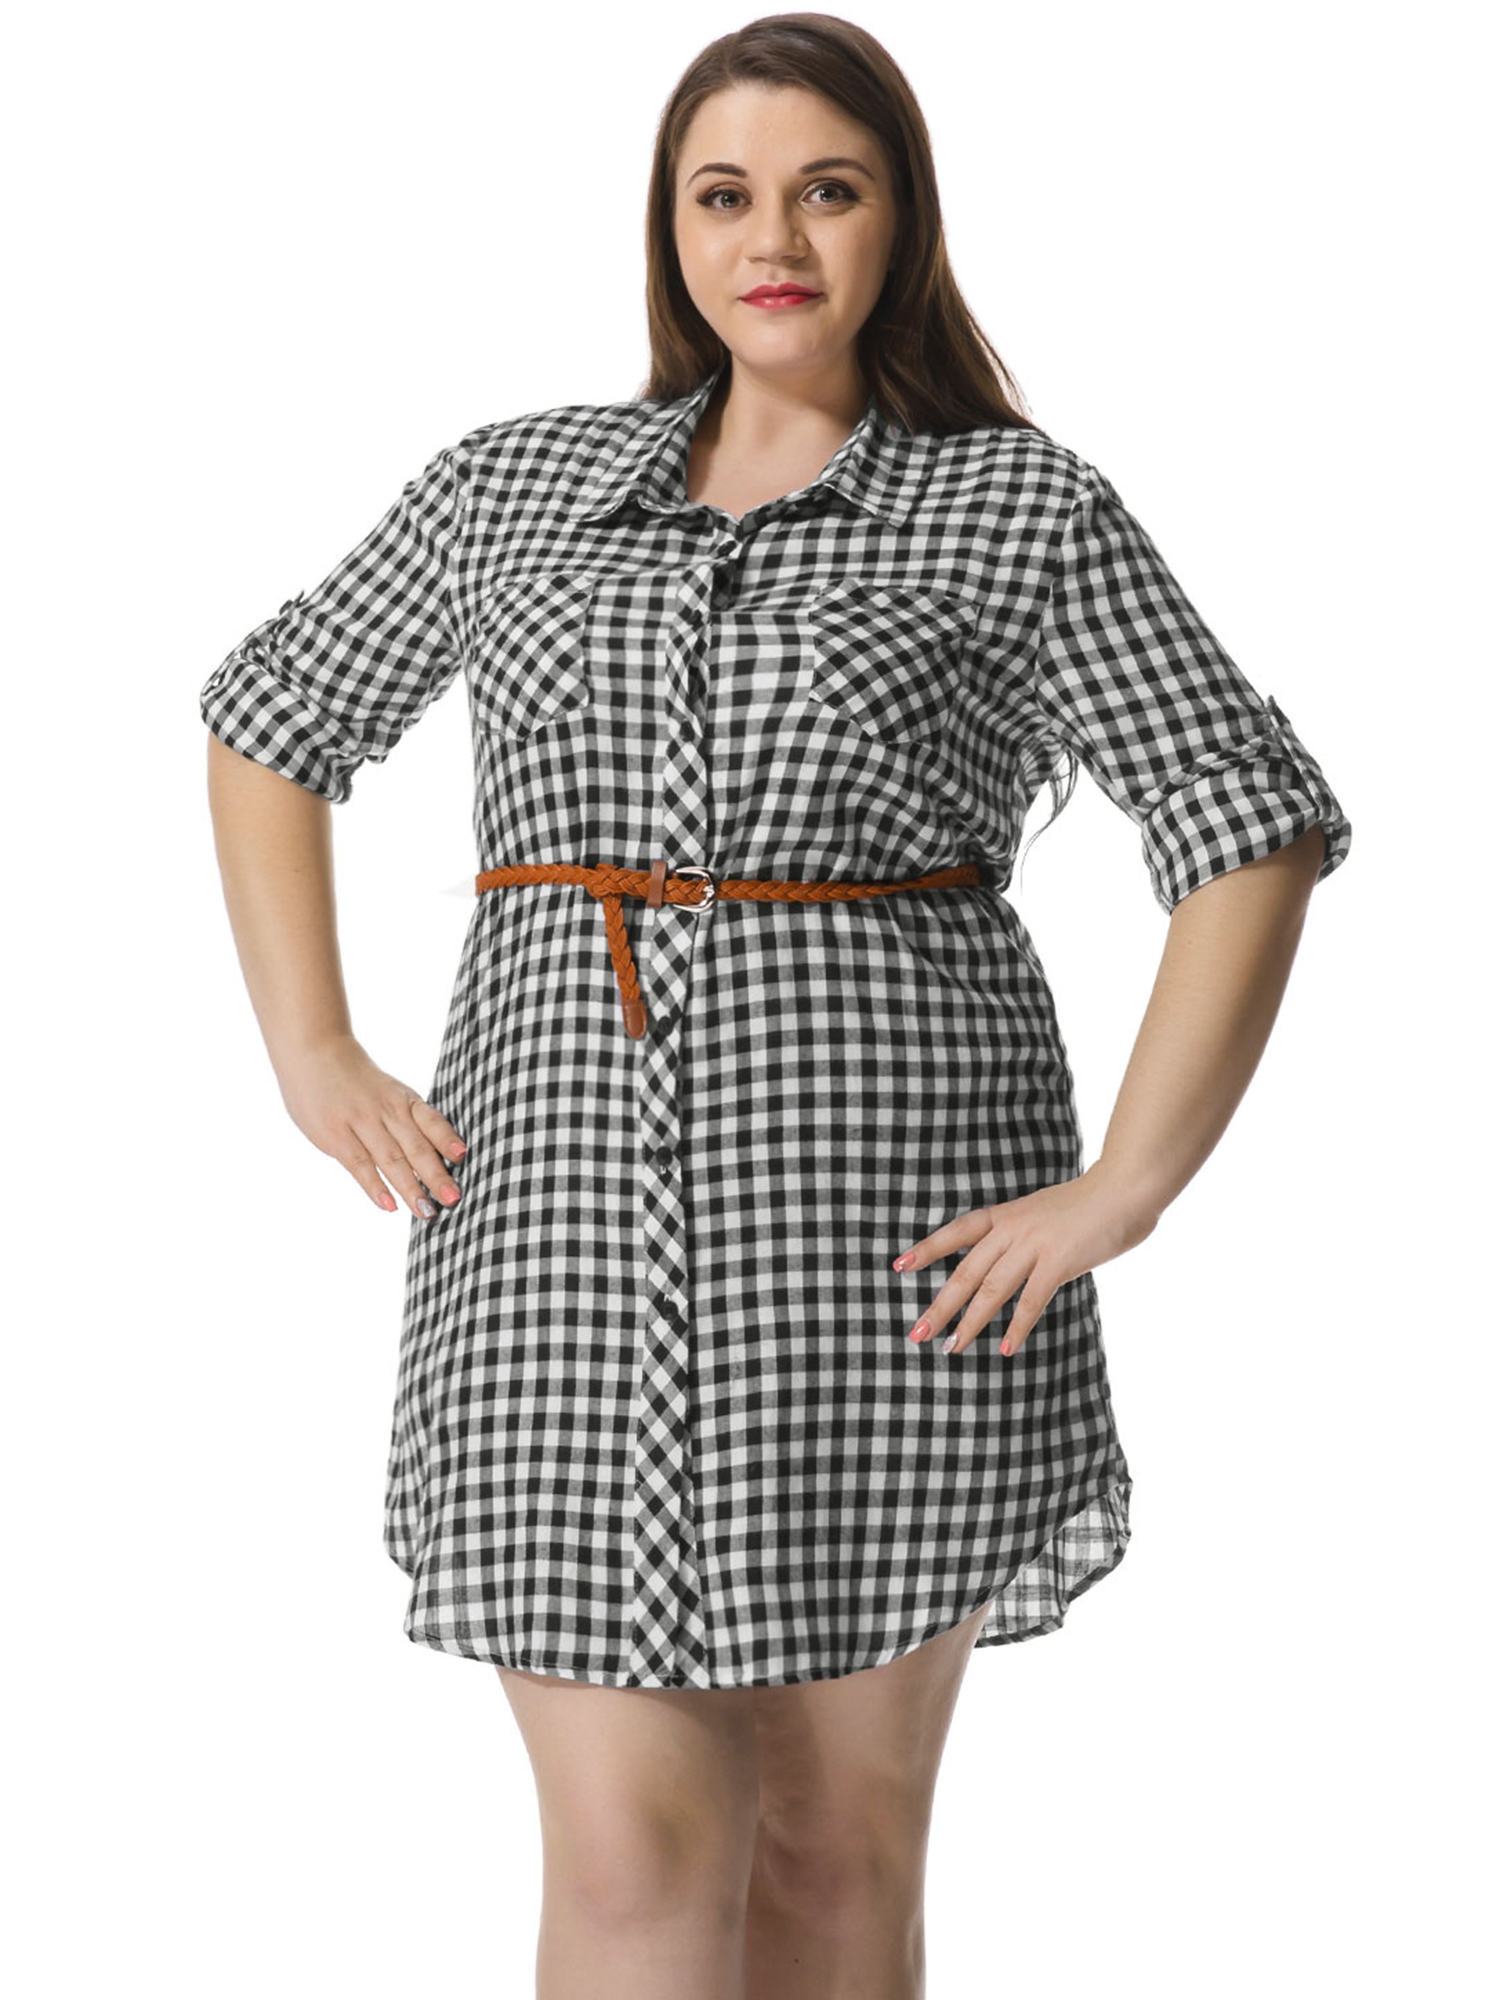 Women\'s Plus Size Roll up Sleeves Belted Plaid Shirt Dress White 3X